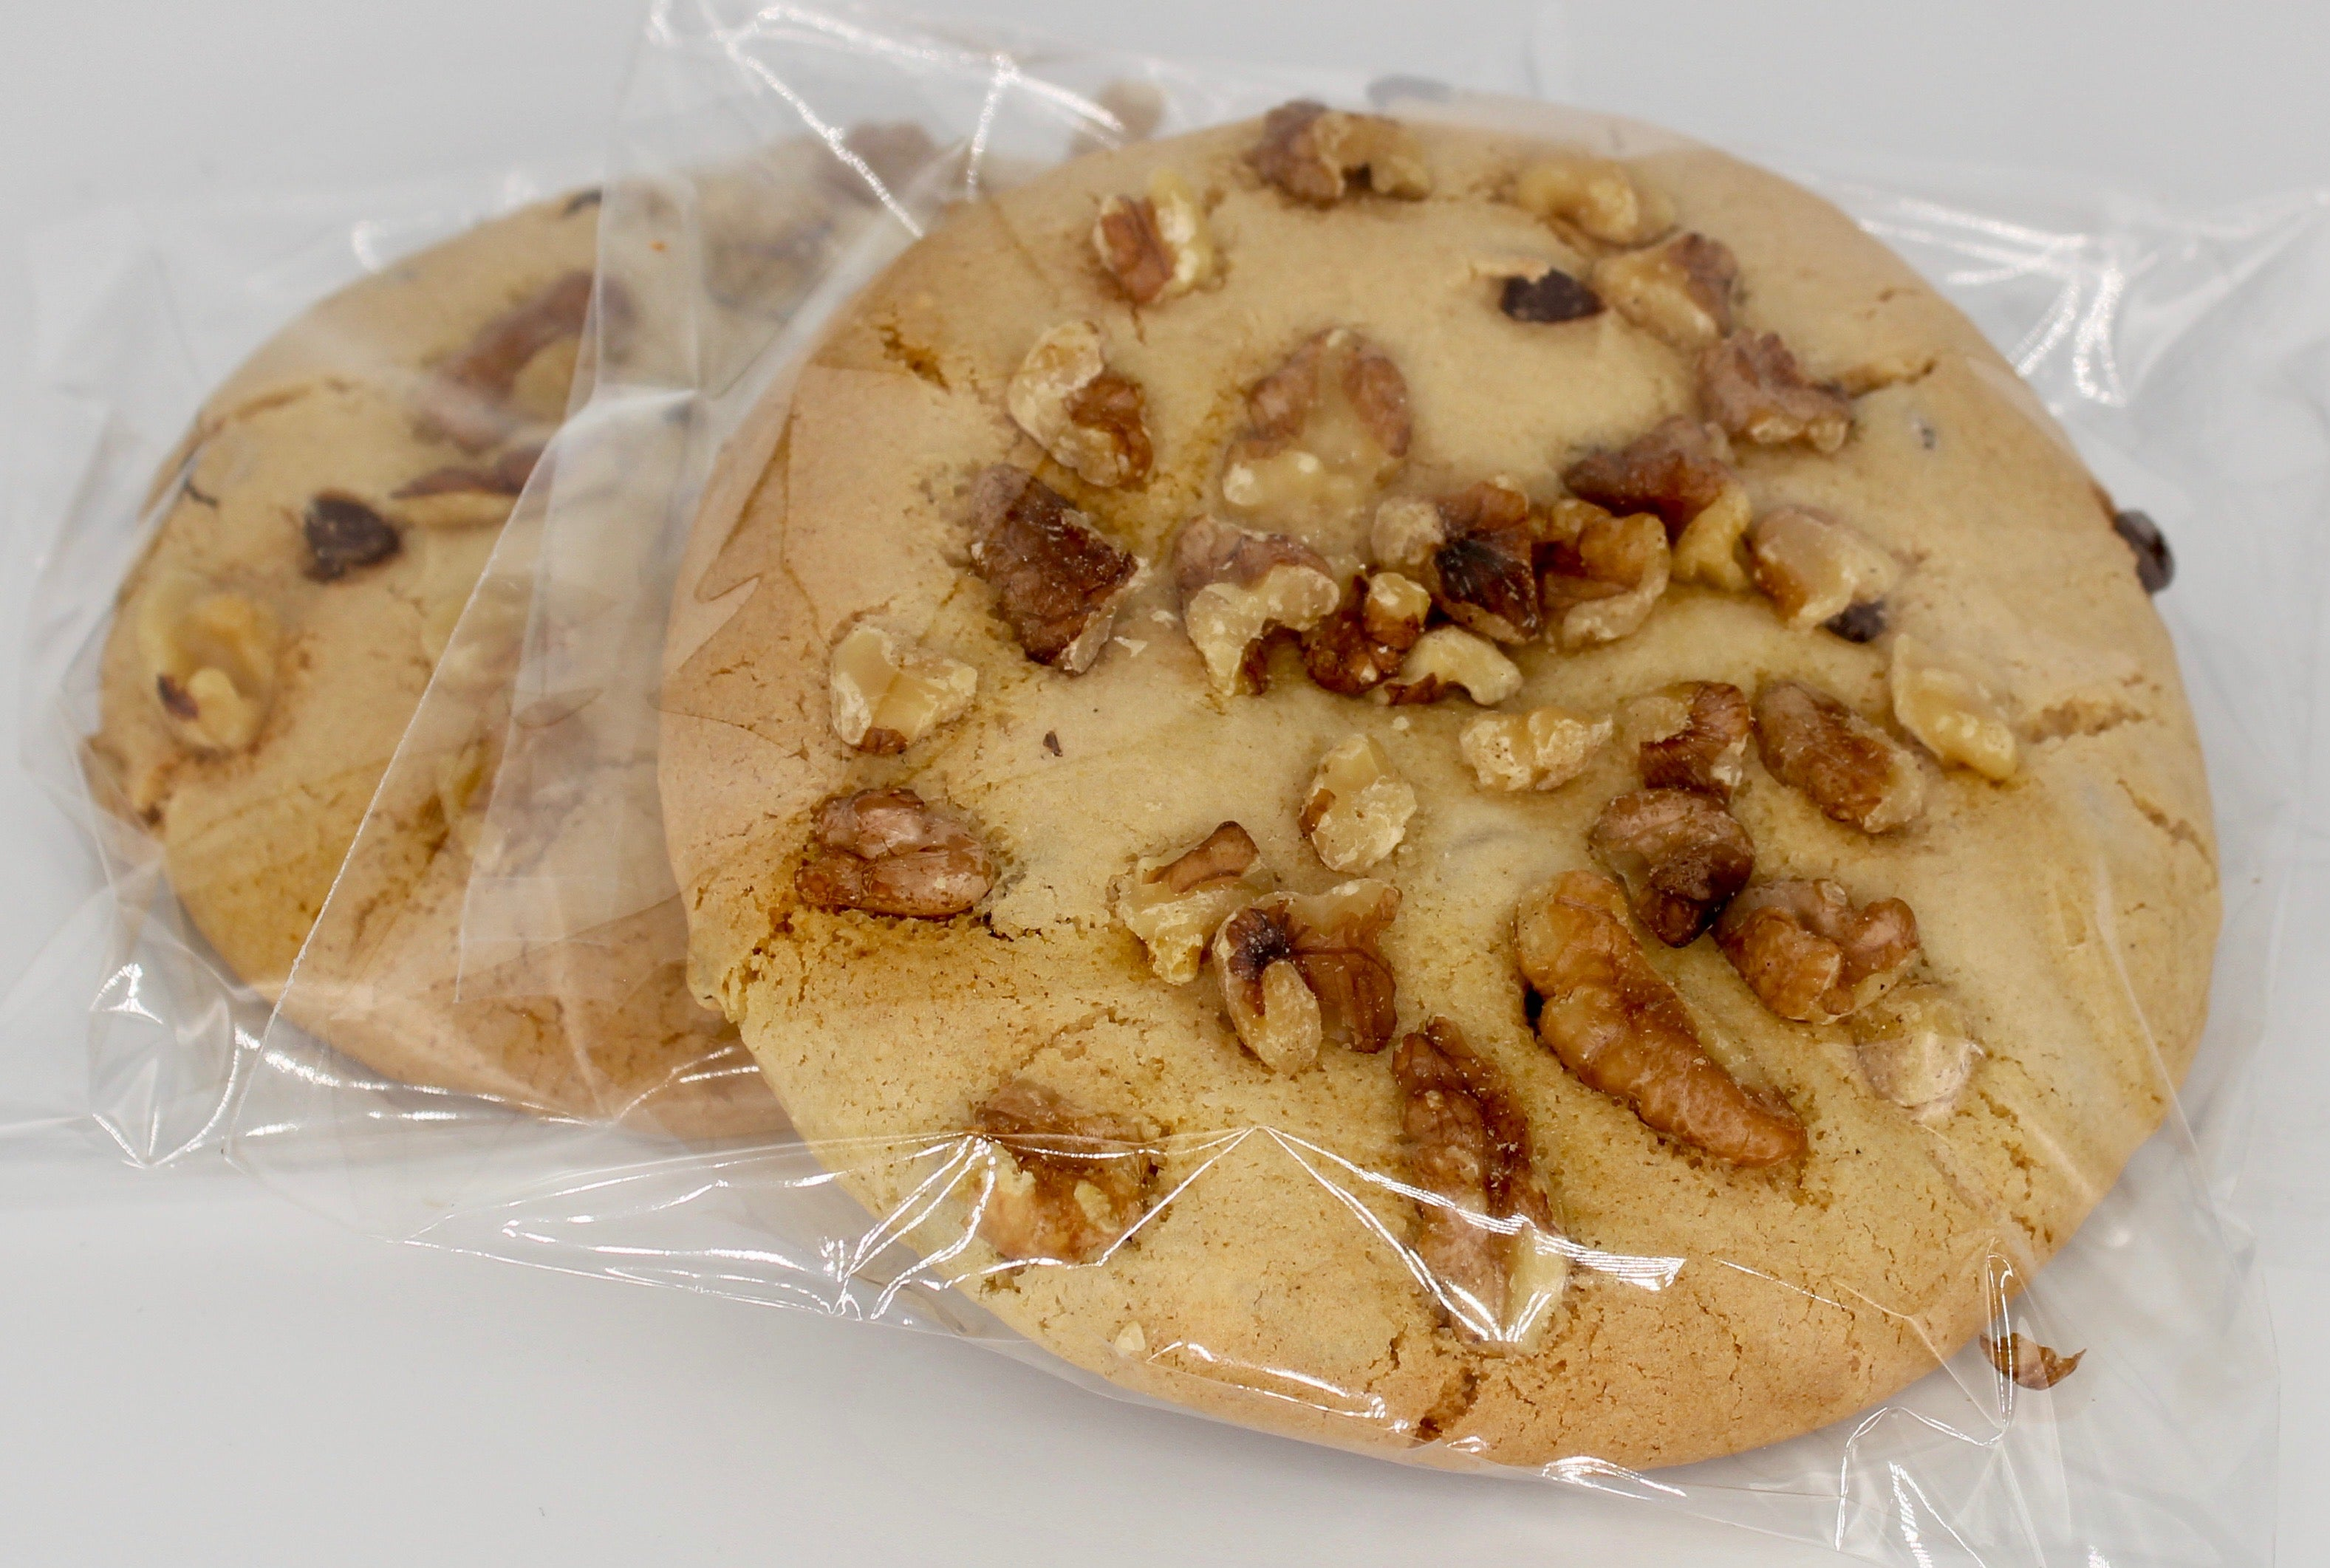 Large Chocolate Chip Walnut Cookie-VARIOUS SIZE PACKS- (Vegan, Gluten Free)